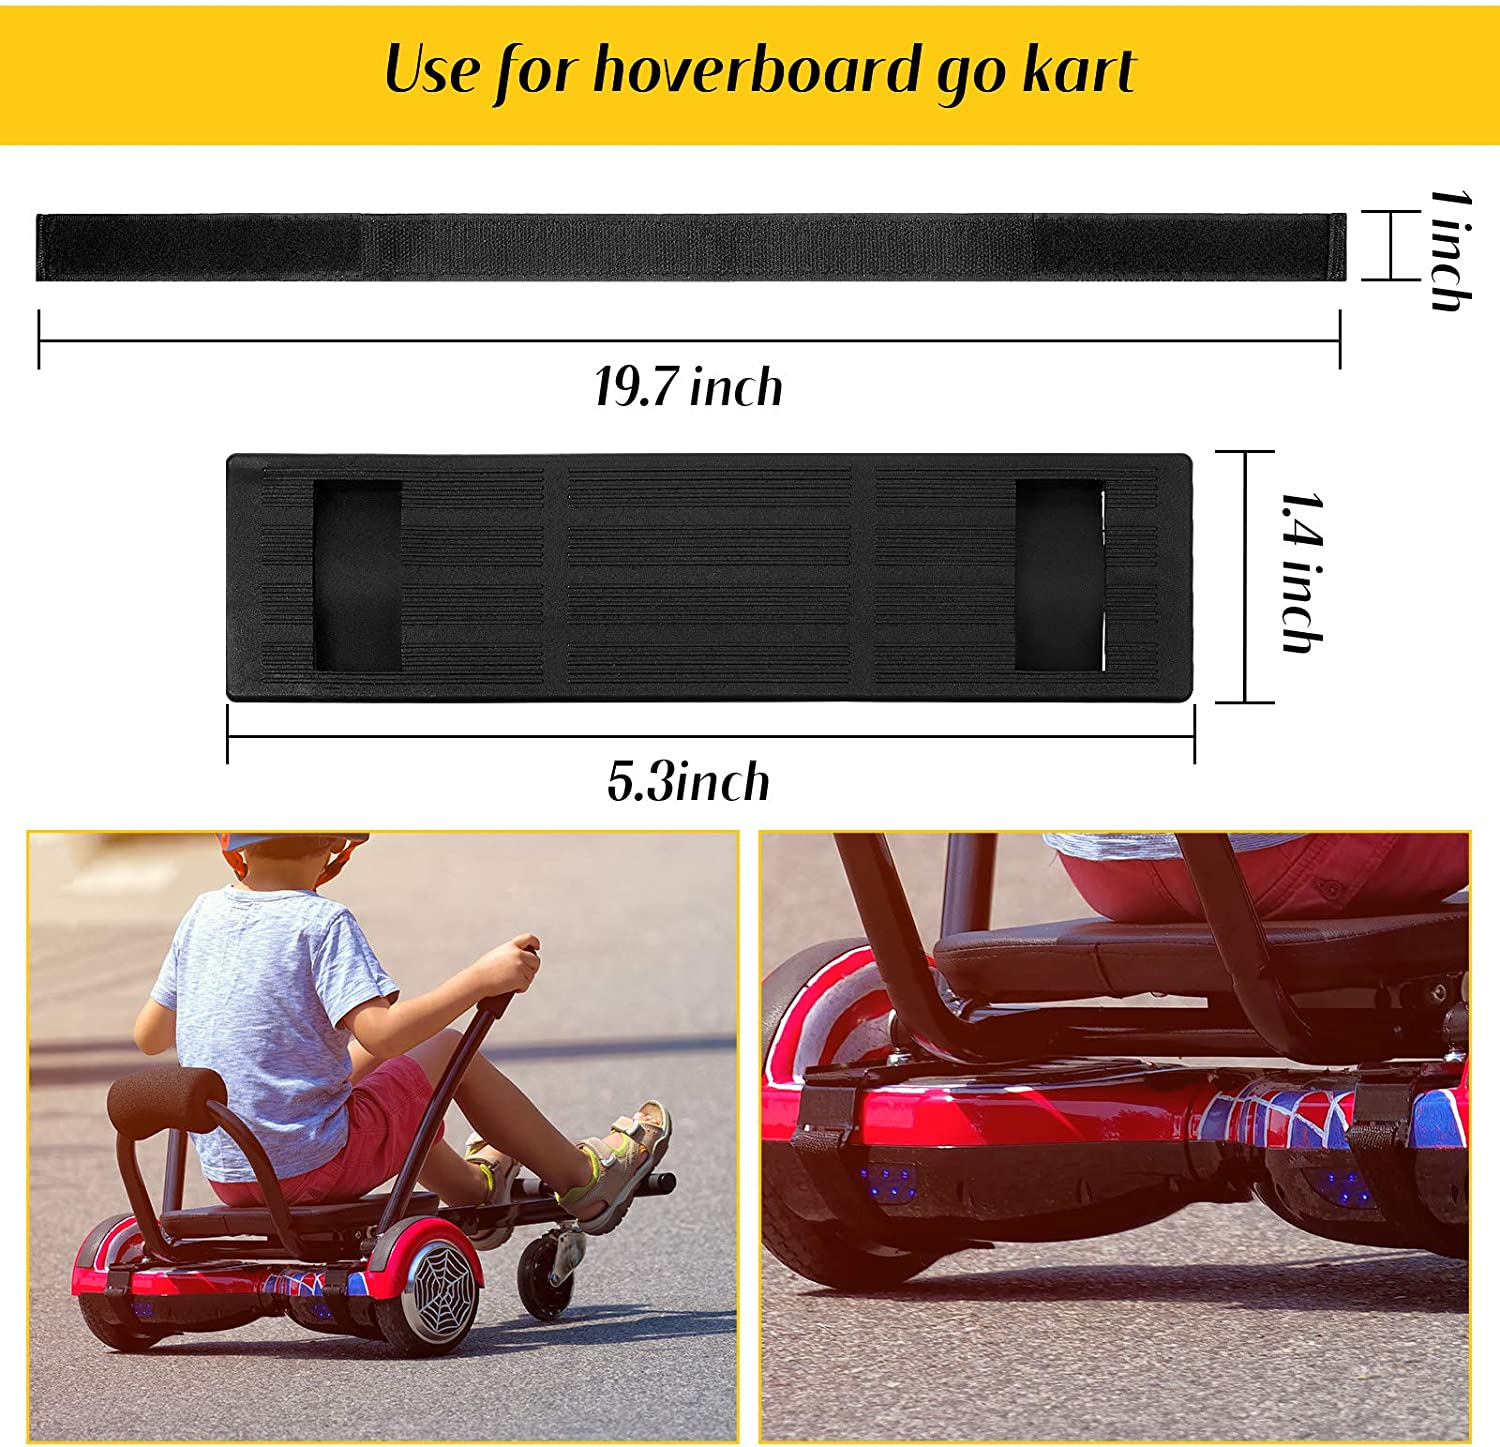 Black 12 Pieces Adjustable Hoverboard Straps and Strap Protector Hook and Loop Fastening Cable Hoverboard Replacement Straps for Kart Accessories Self Balance Scooter